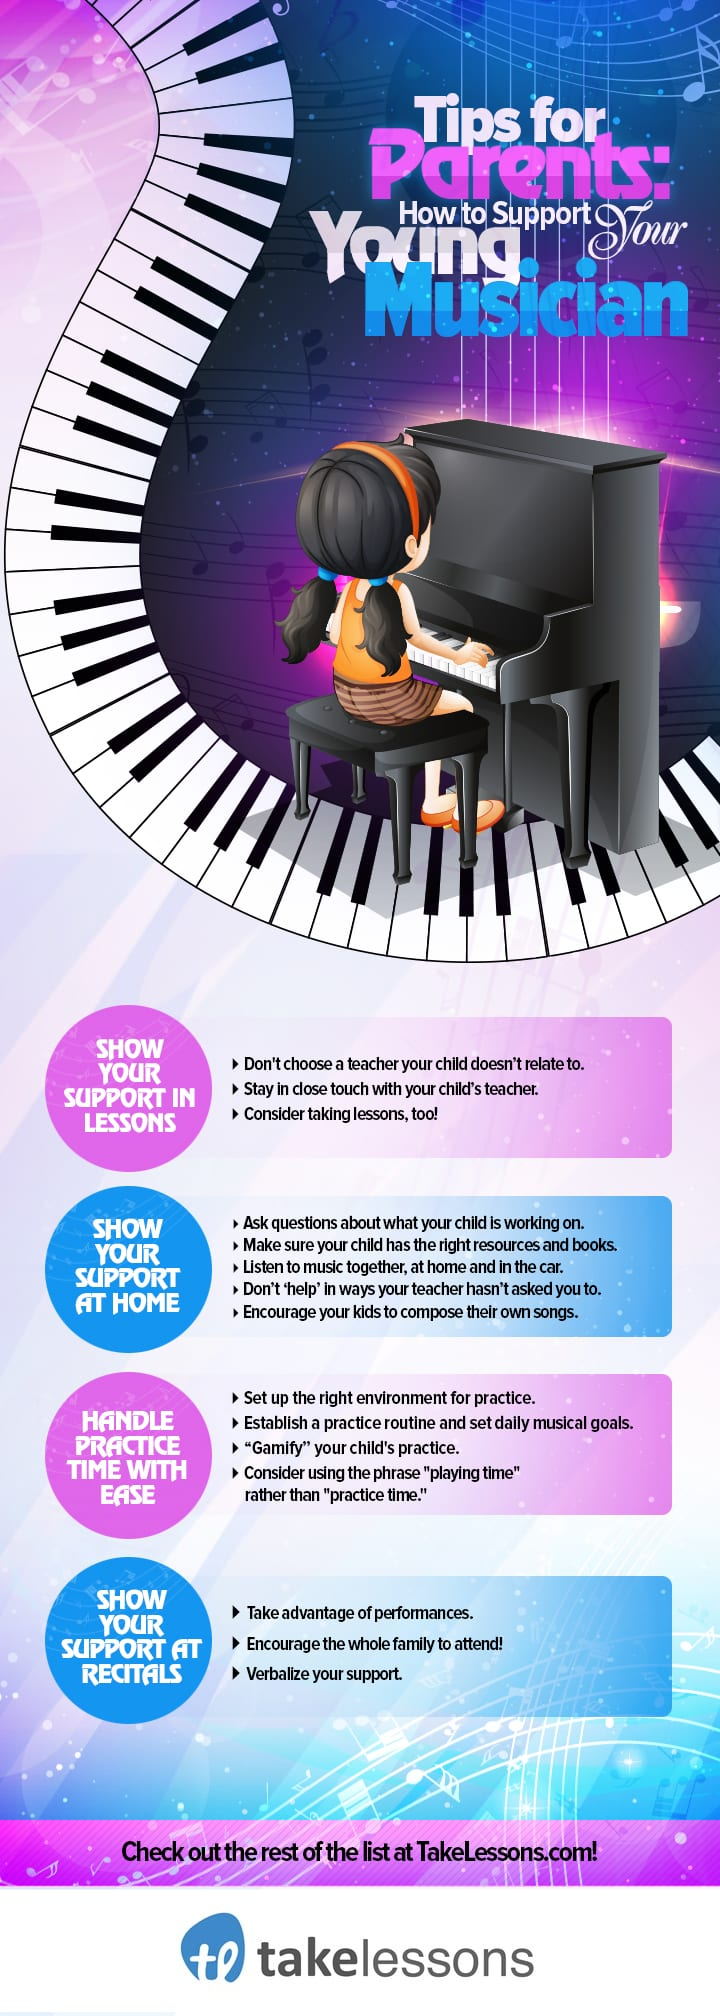 25 Tips for Supporting Your Young Musician [Infographic]